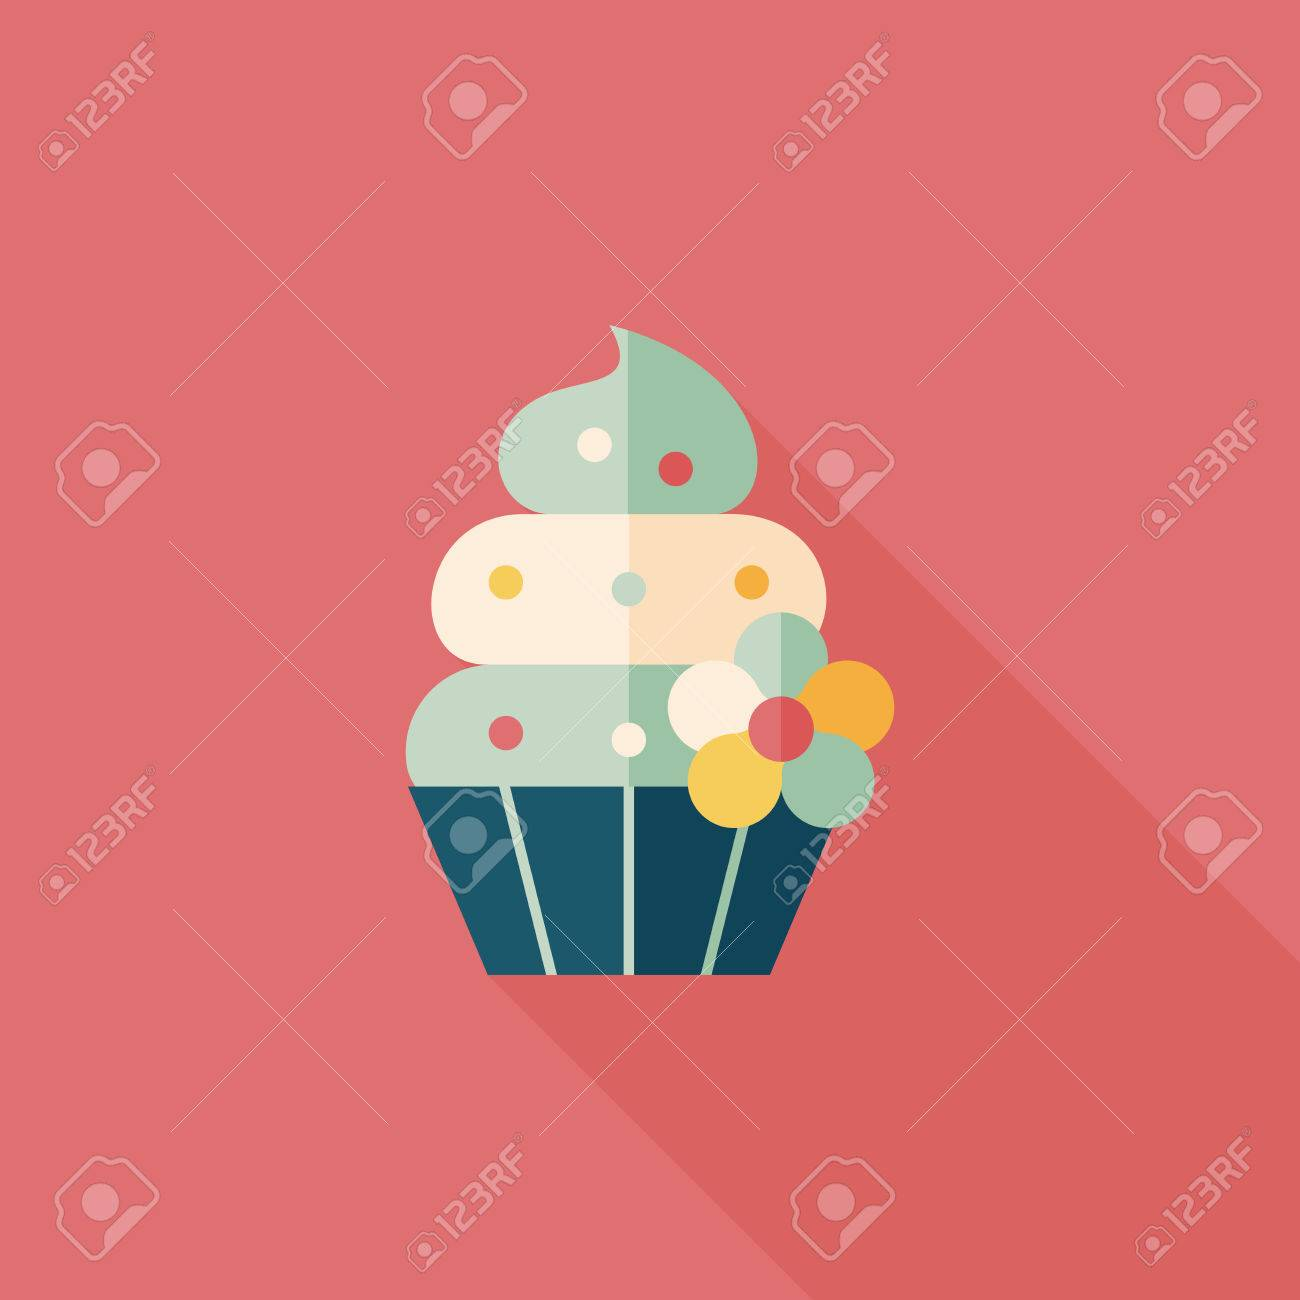 birthday cake flat icon with long shadow,eps10 - 31696730